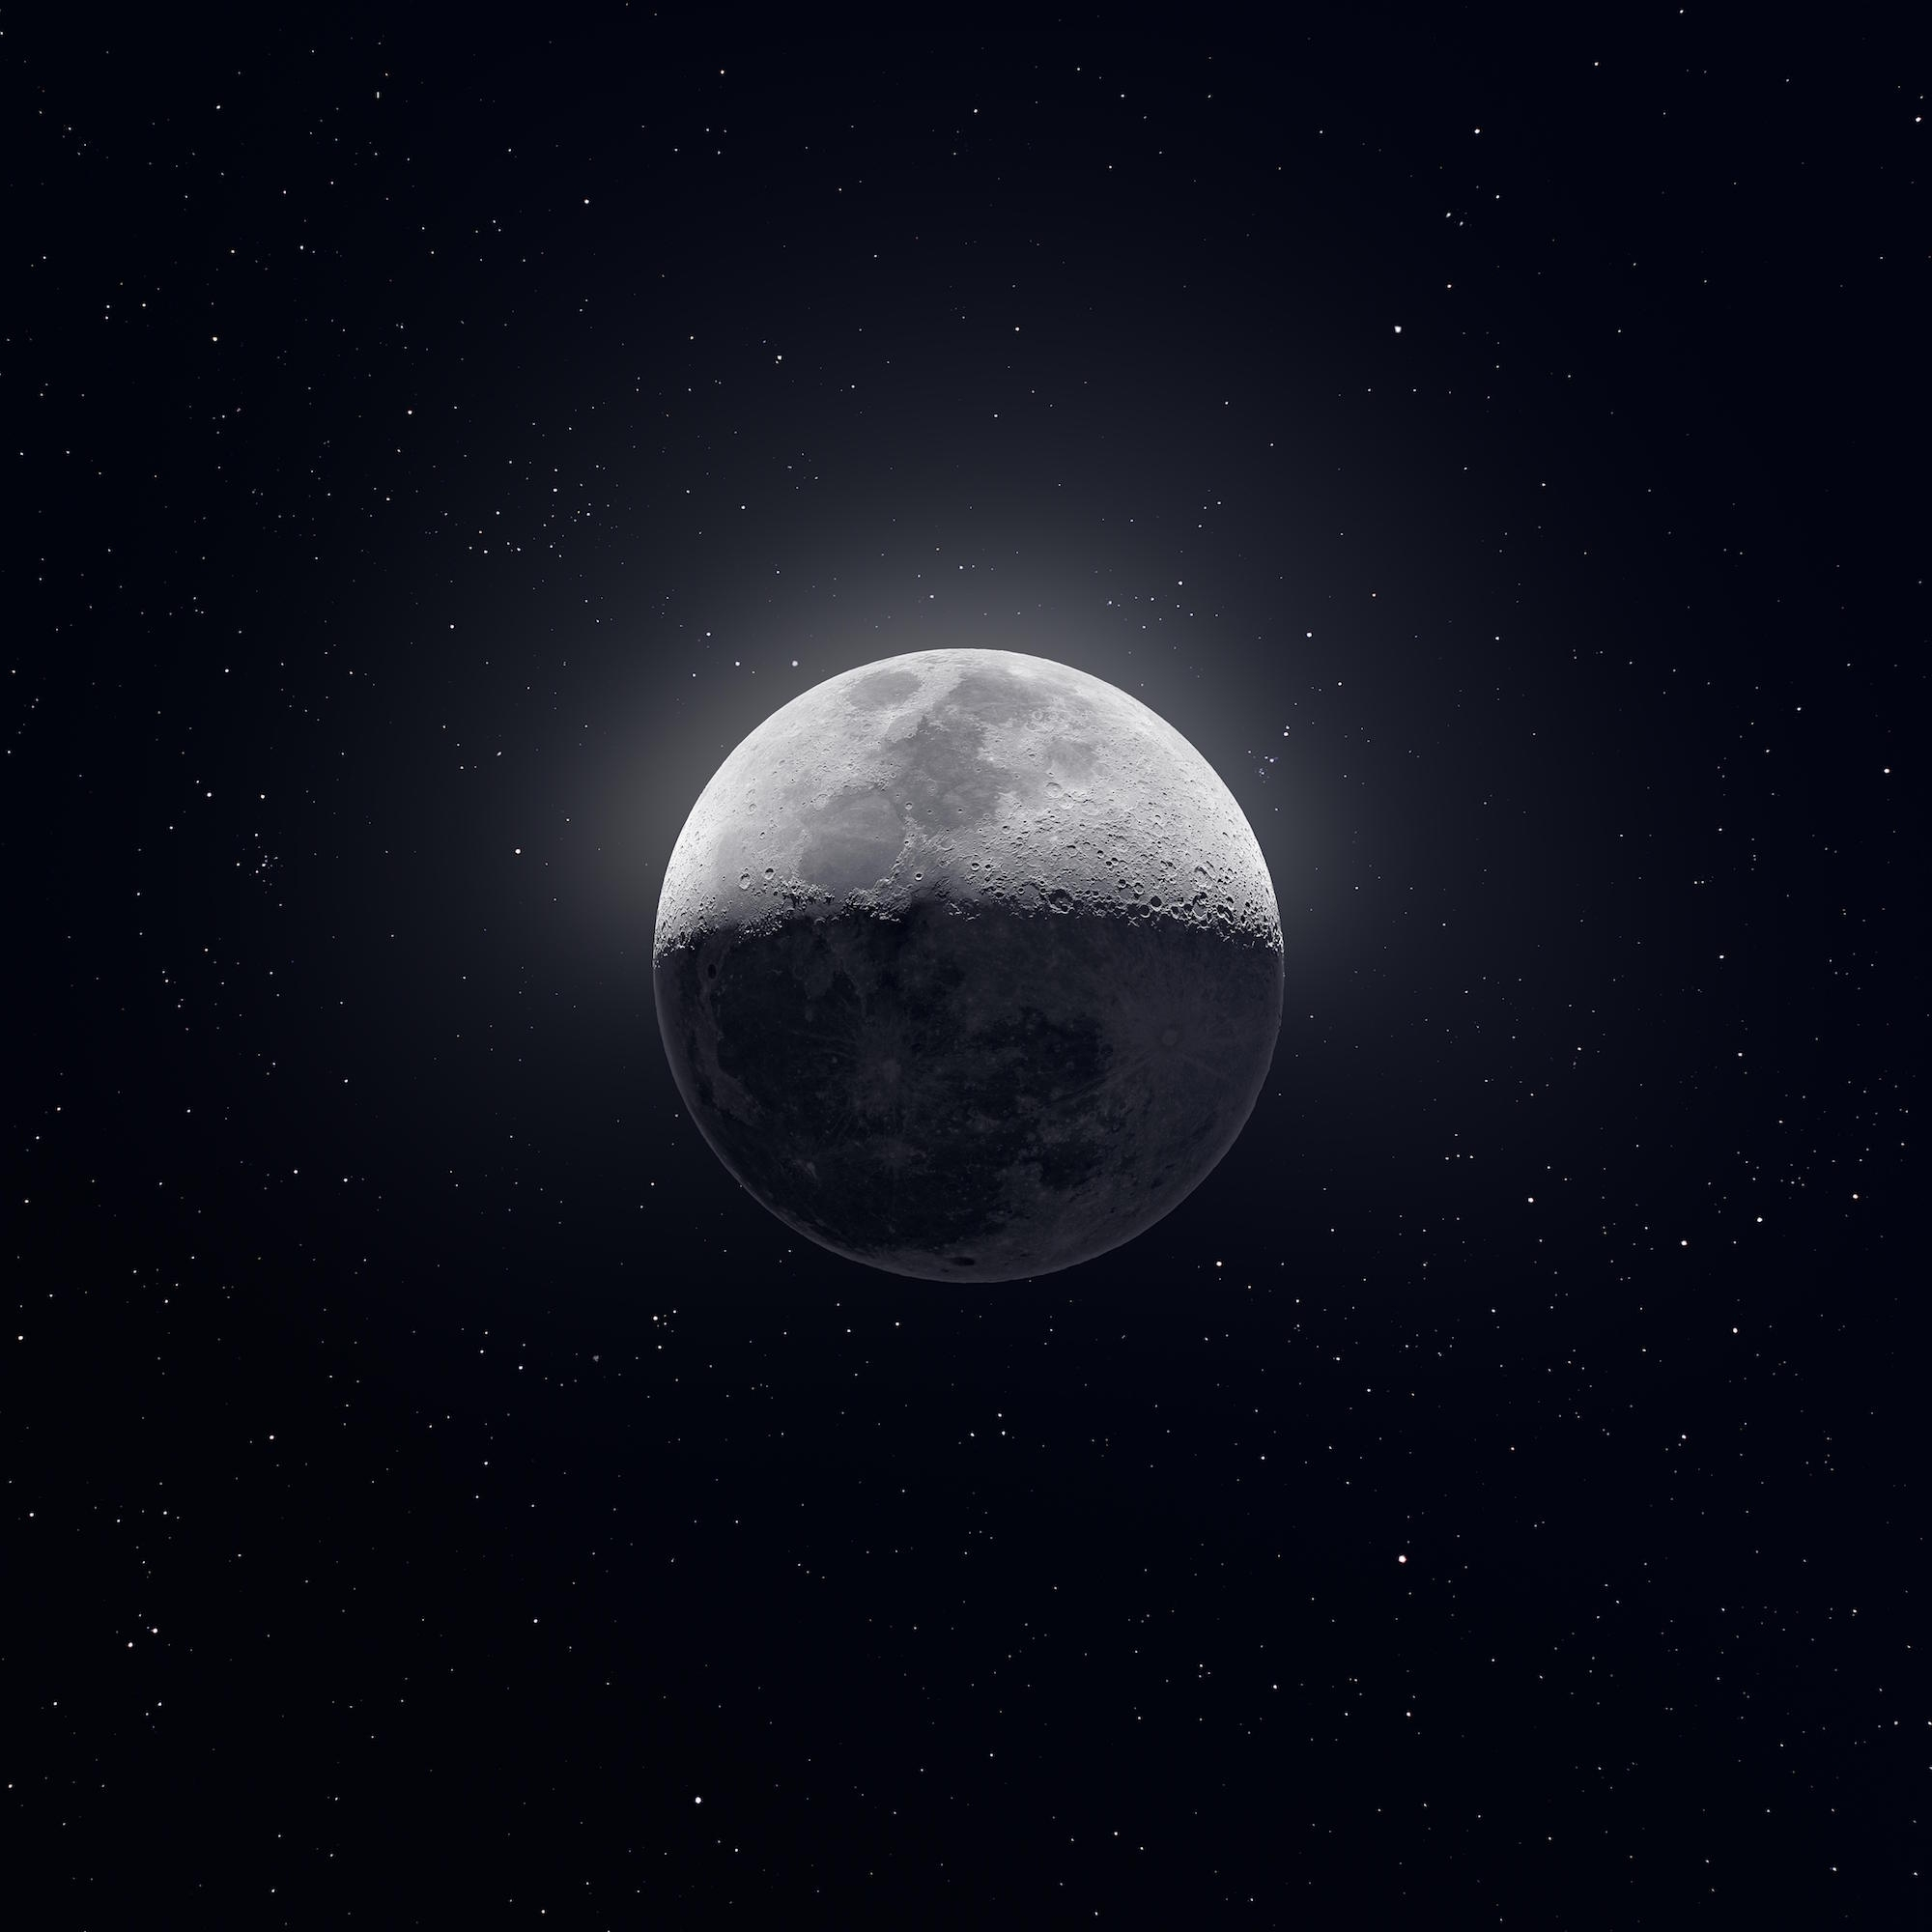 50,000 Photographs Combine To Form A Detailed Image Of The Moon And for Moon Pictures Moon Related Pictures